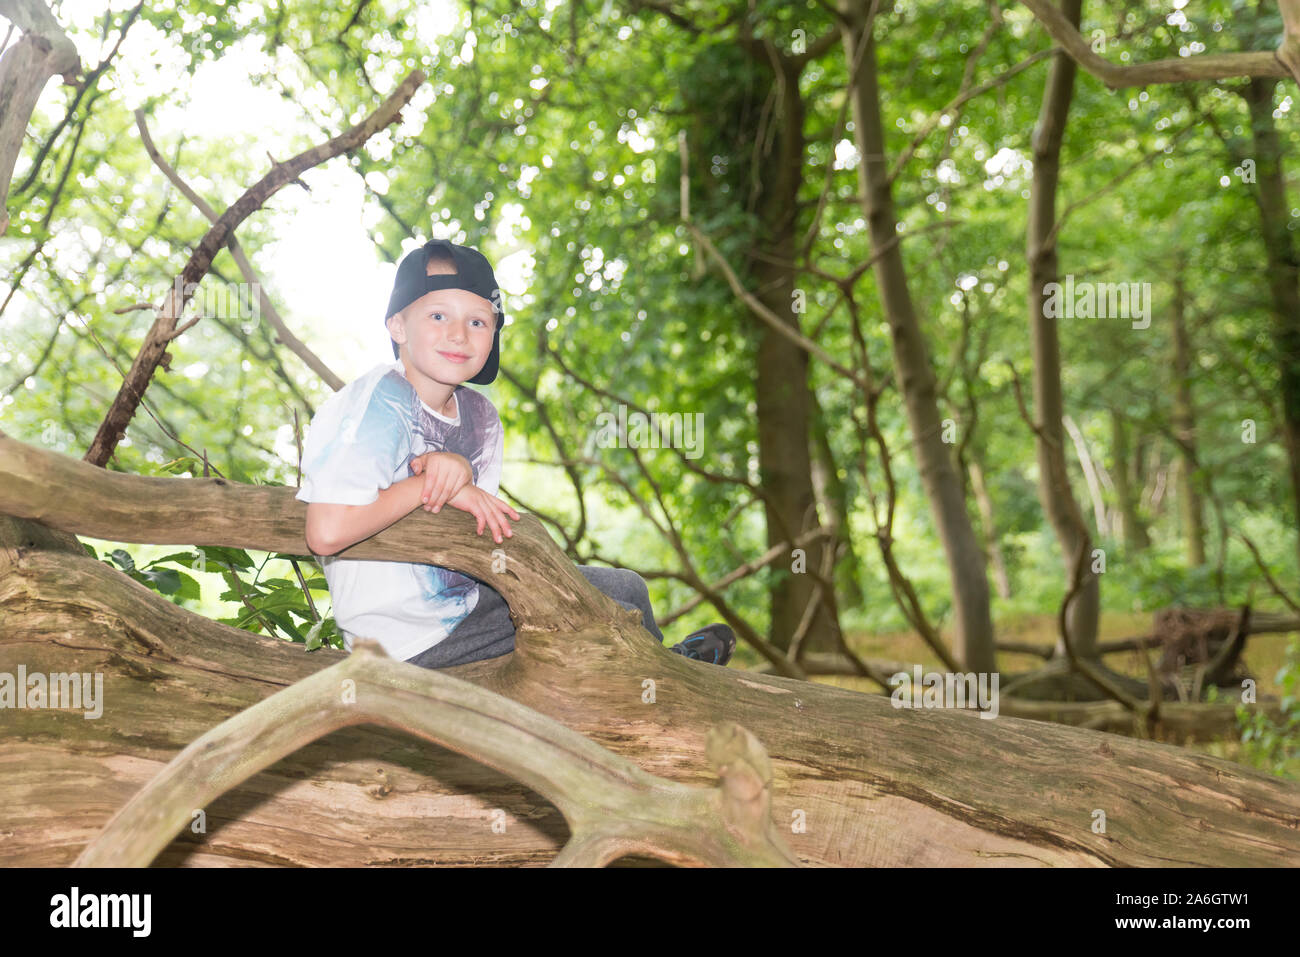 A cheeky little boy sitting in a cornfield wearing a baseball cap, while out playing with friends Stock Photo